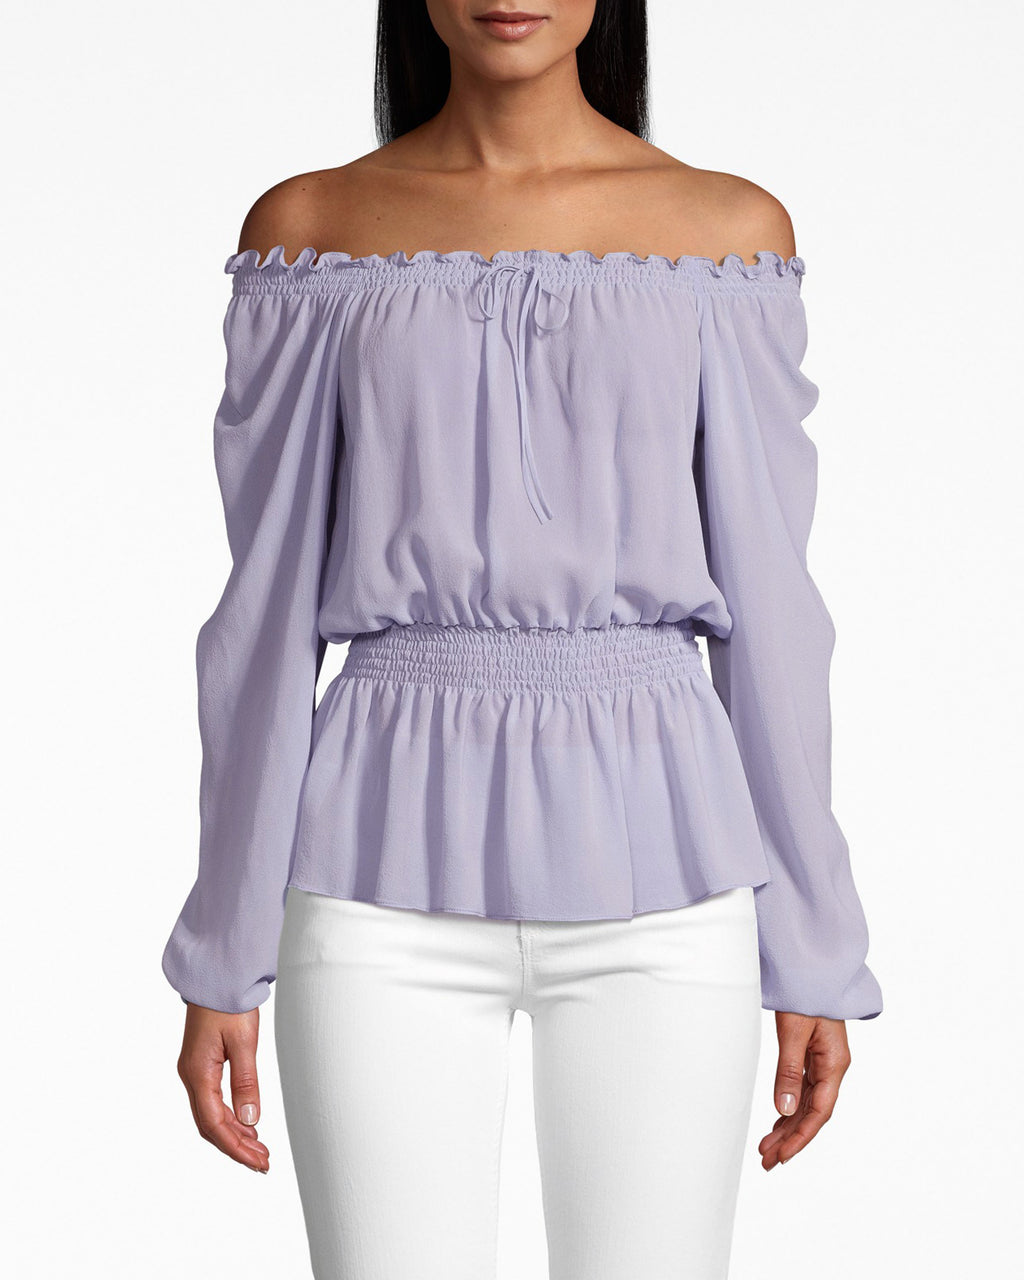 BJ10212 - SOLID SILK LONG SLEEVE SMOCKED BLOUSE - tops - blouses - SILKY AND SMOCKED. THIS BLOUSE IS SMOCKED AT THE WAIST AND CINCHED AT THE SLEEVES. THE RUFFLED NECKLINE UPGRADES THIS OFF THE SHOULDER STYLE.